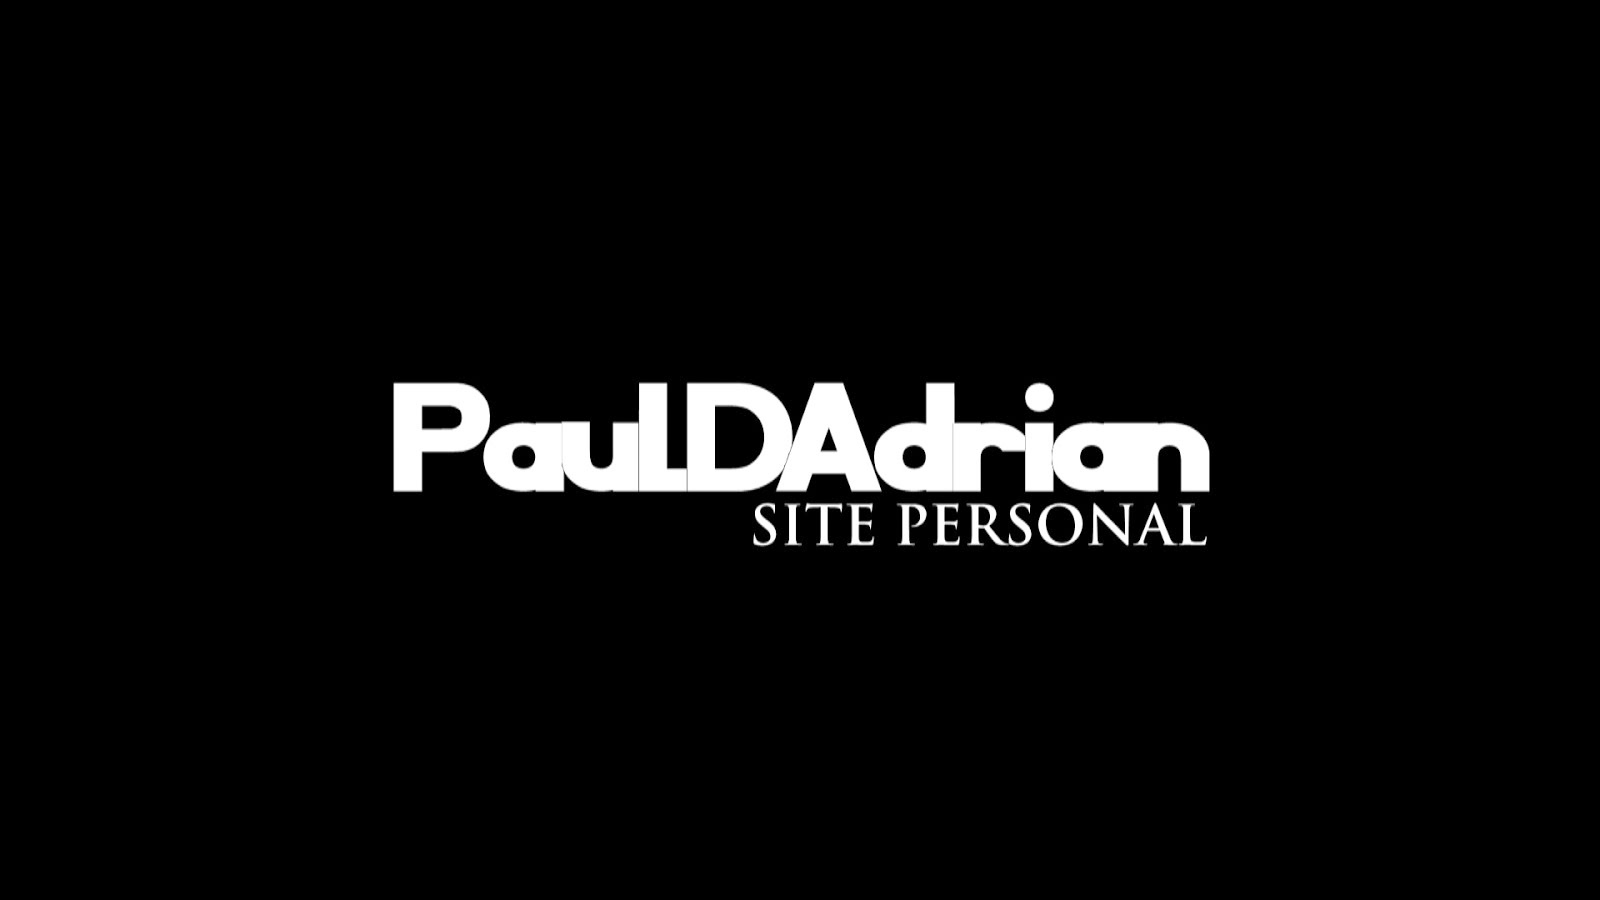 SITE PERSONAL